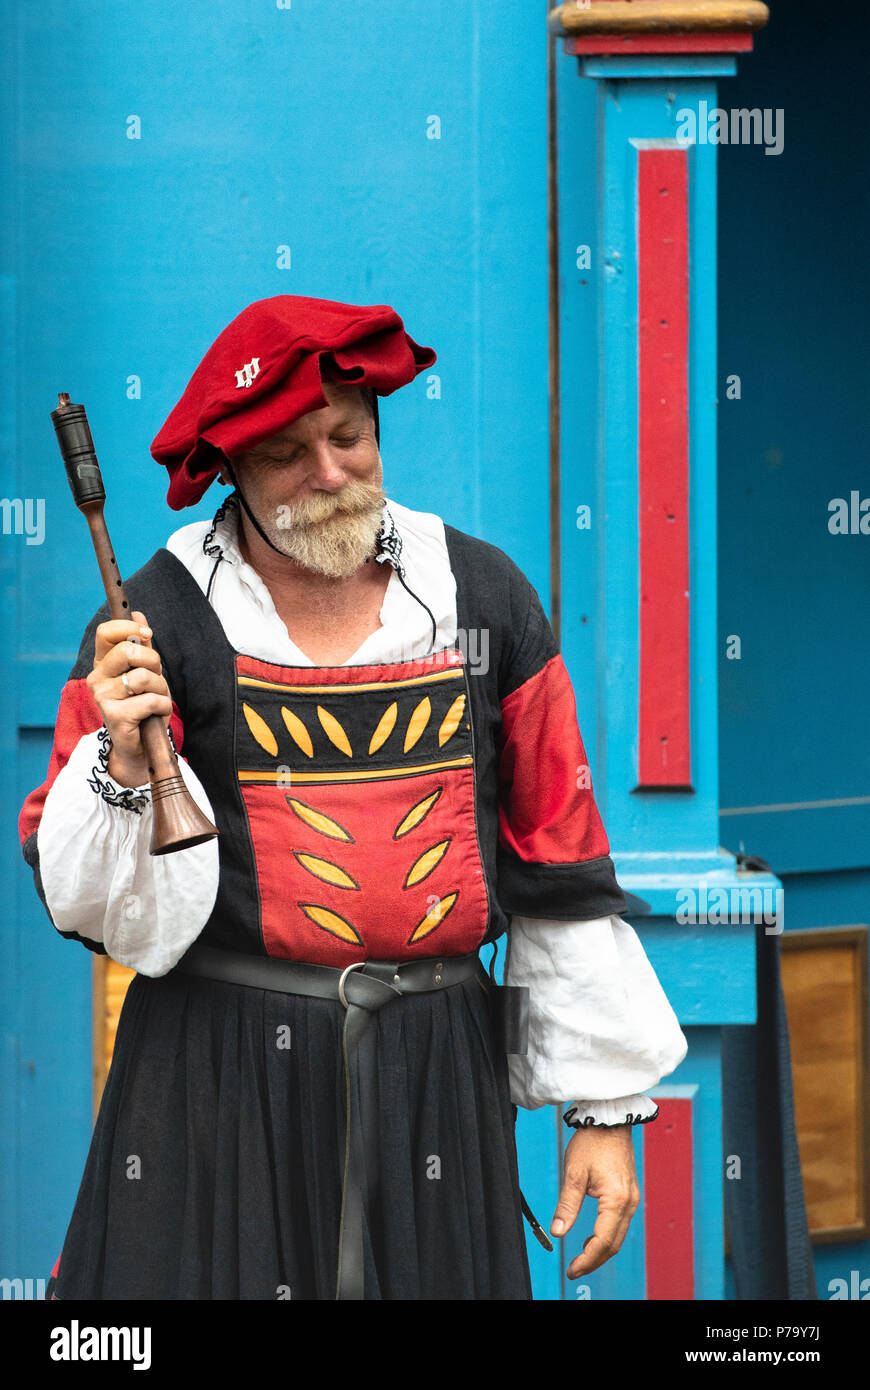 International Minstrel Troupe Rauschpfeife performer from the group Wolgemut. Wearing bright red and black Tudor period costume at the MD Ren Fest. - Stock Image